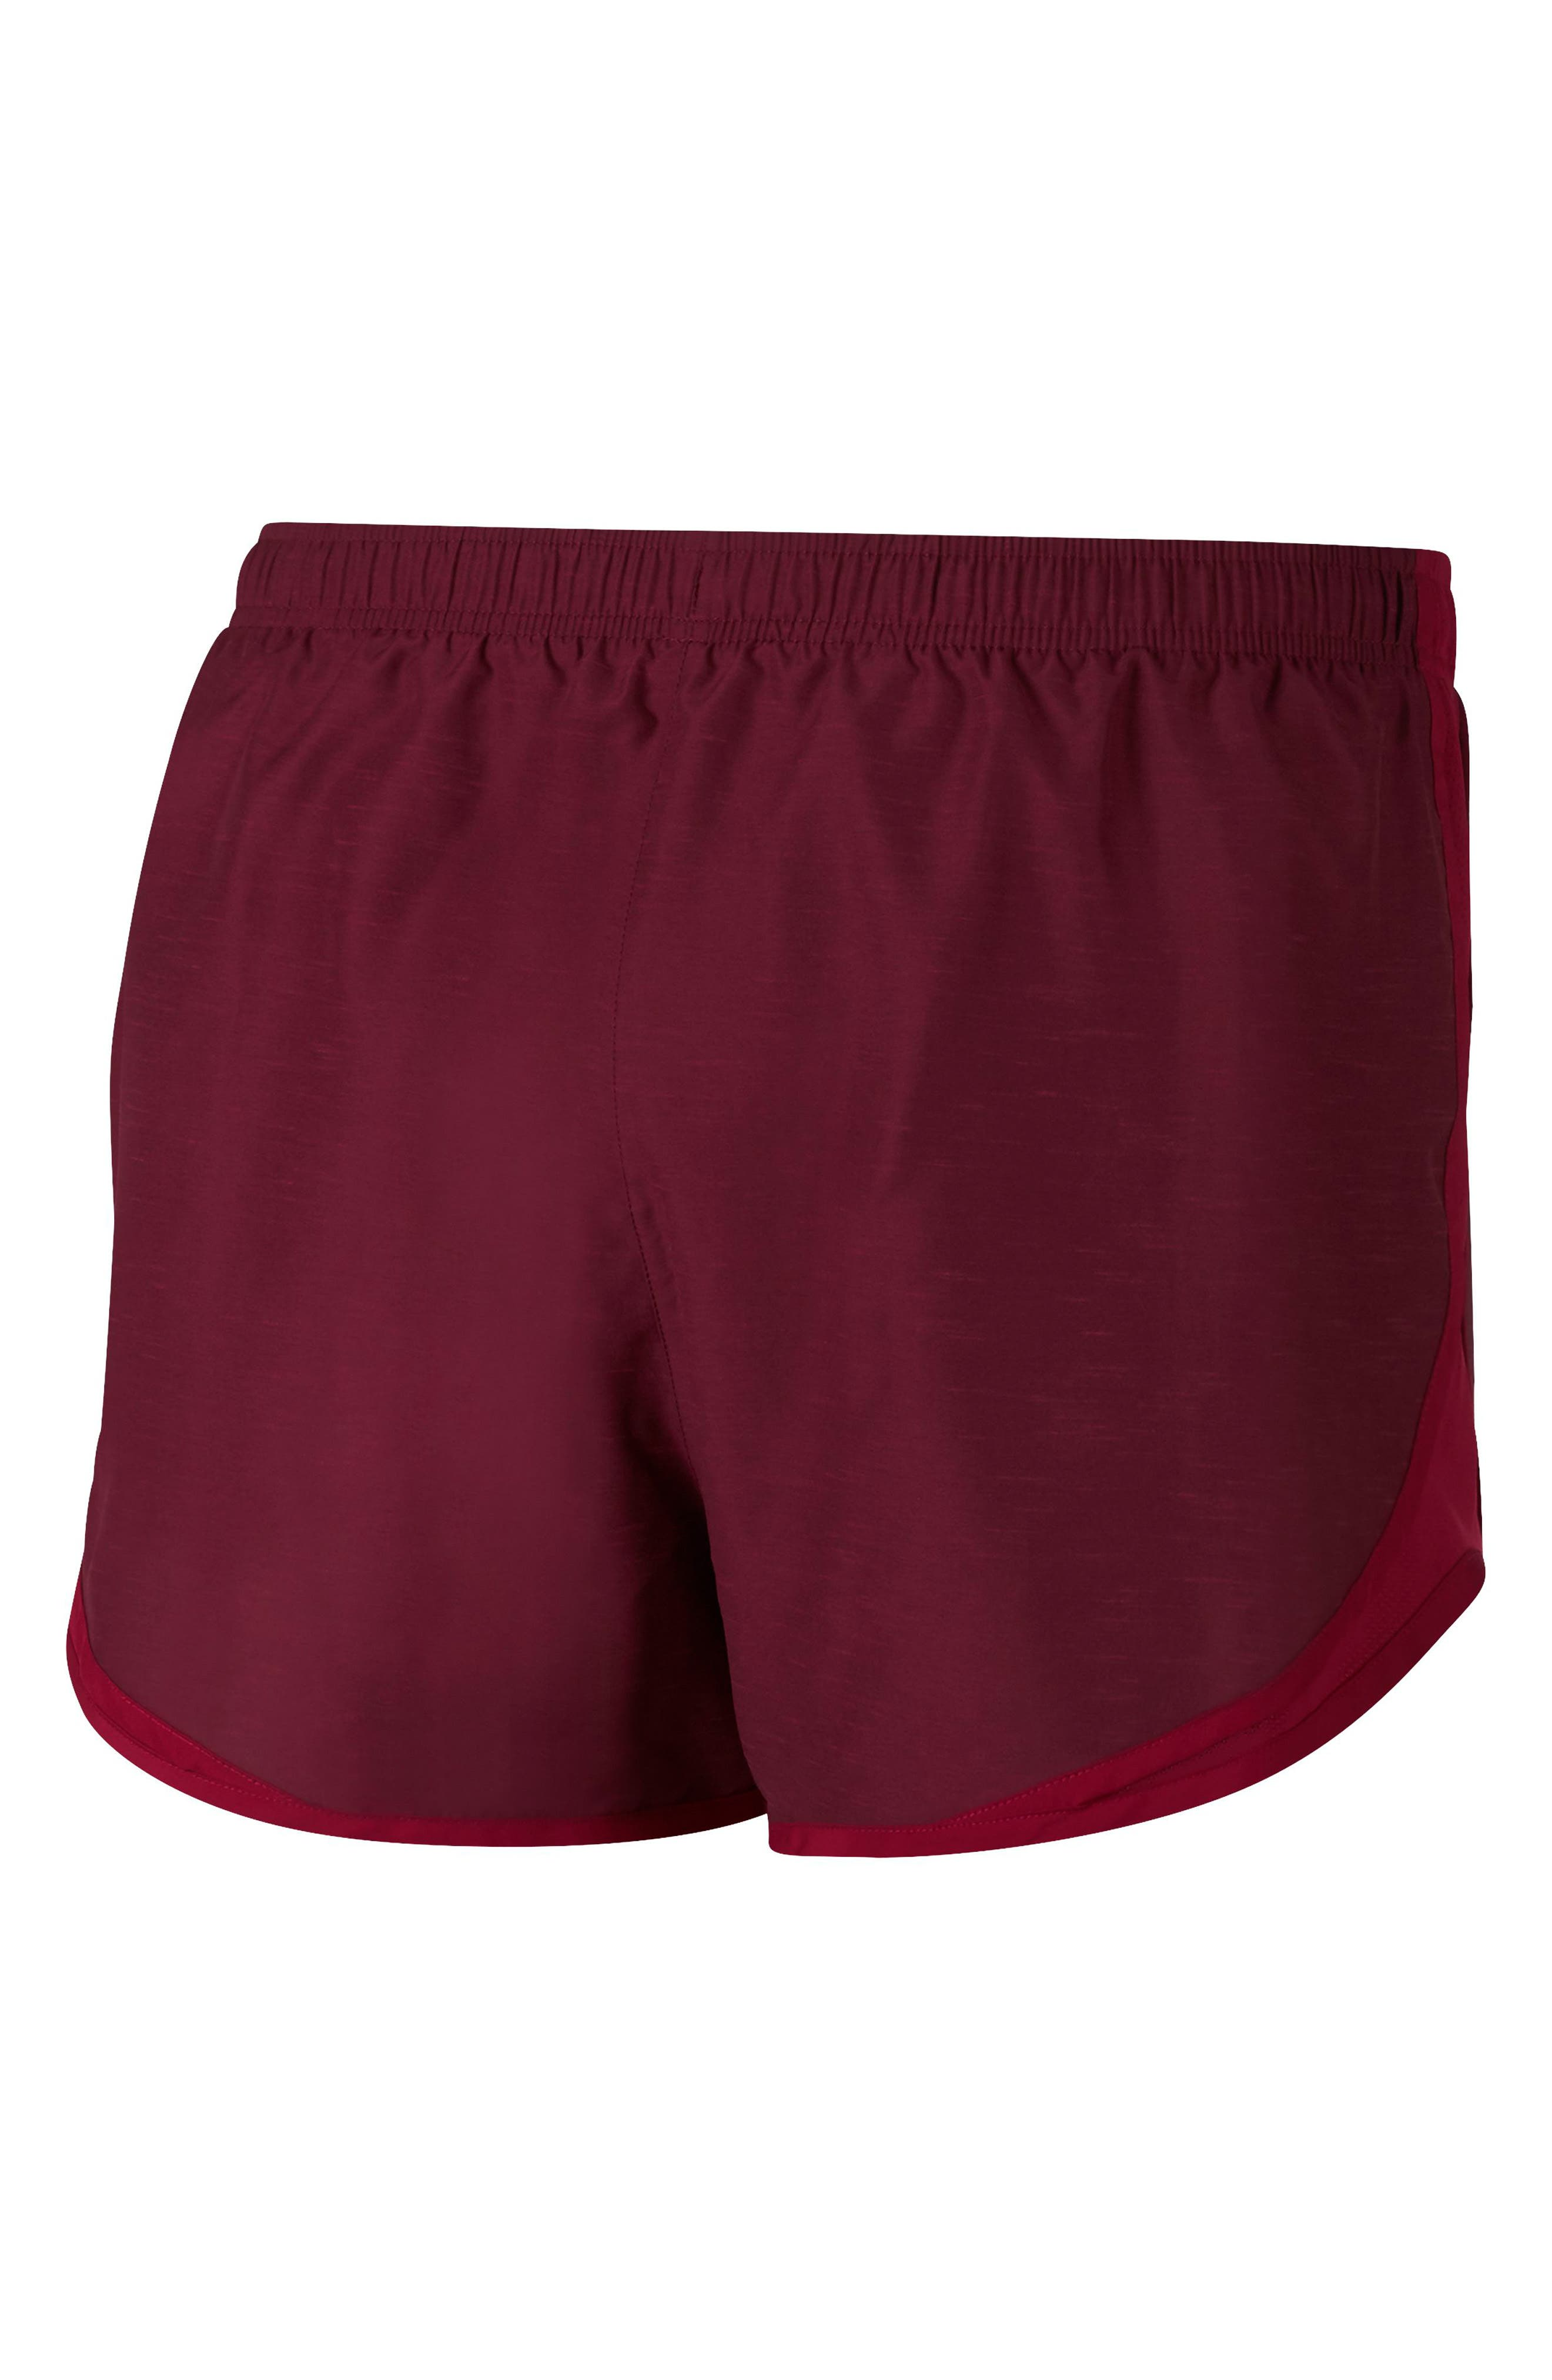 Dry Tempo Running Shorts,                             Alternate thumbnail 3, color,                             RED CRUSH/WOLF GREY